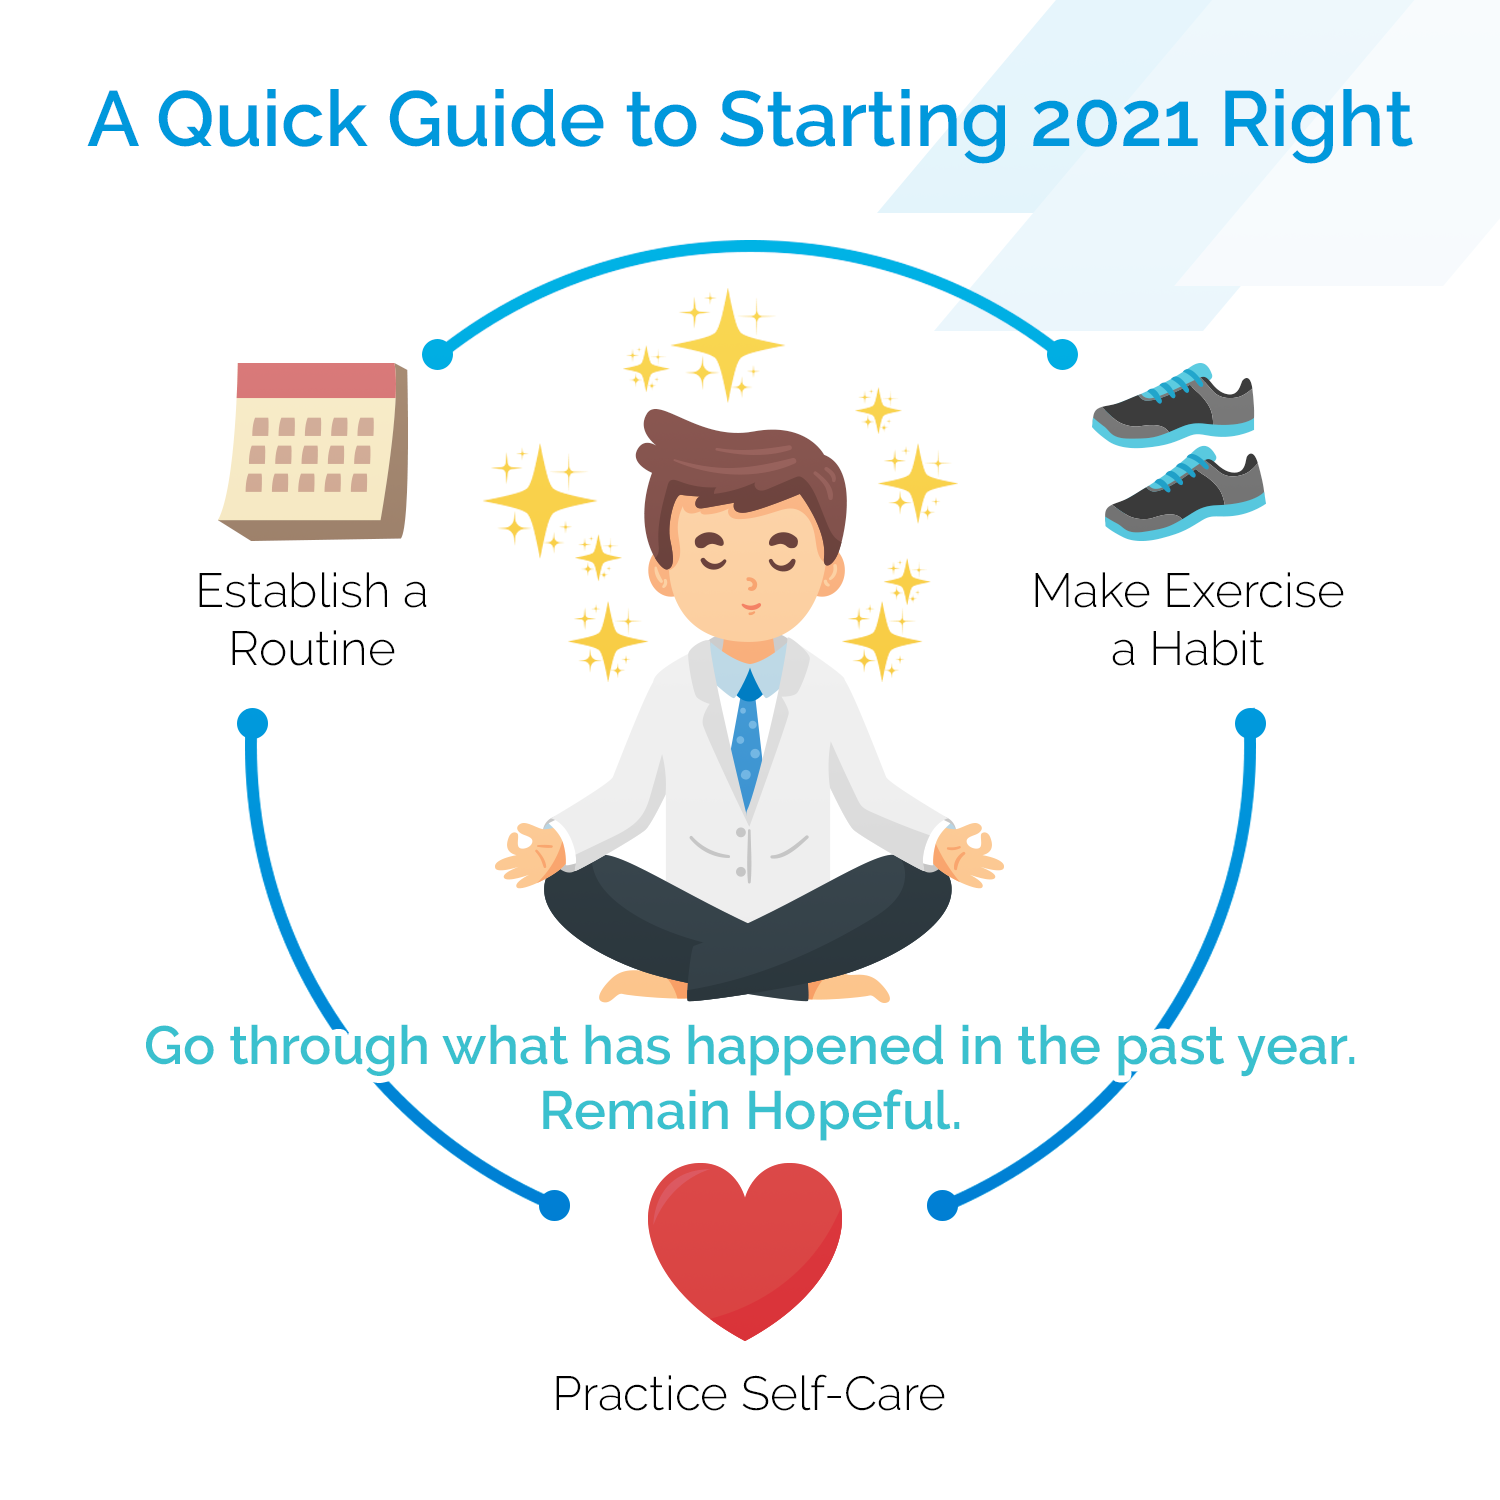 [PHOTO] 210108 A quick guide for 2021